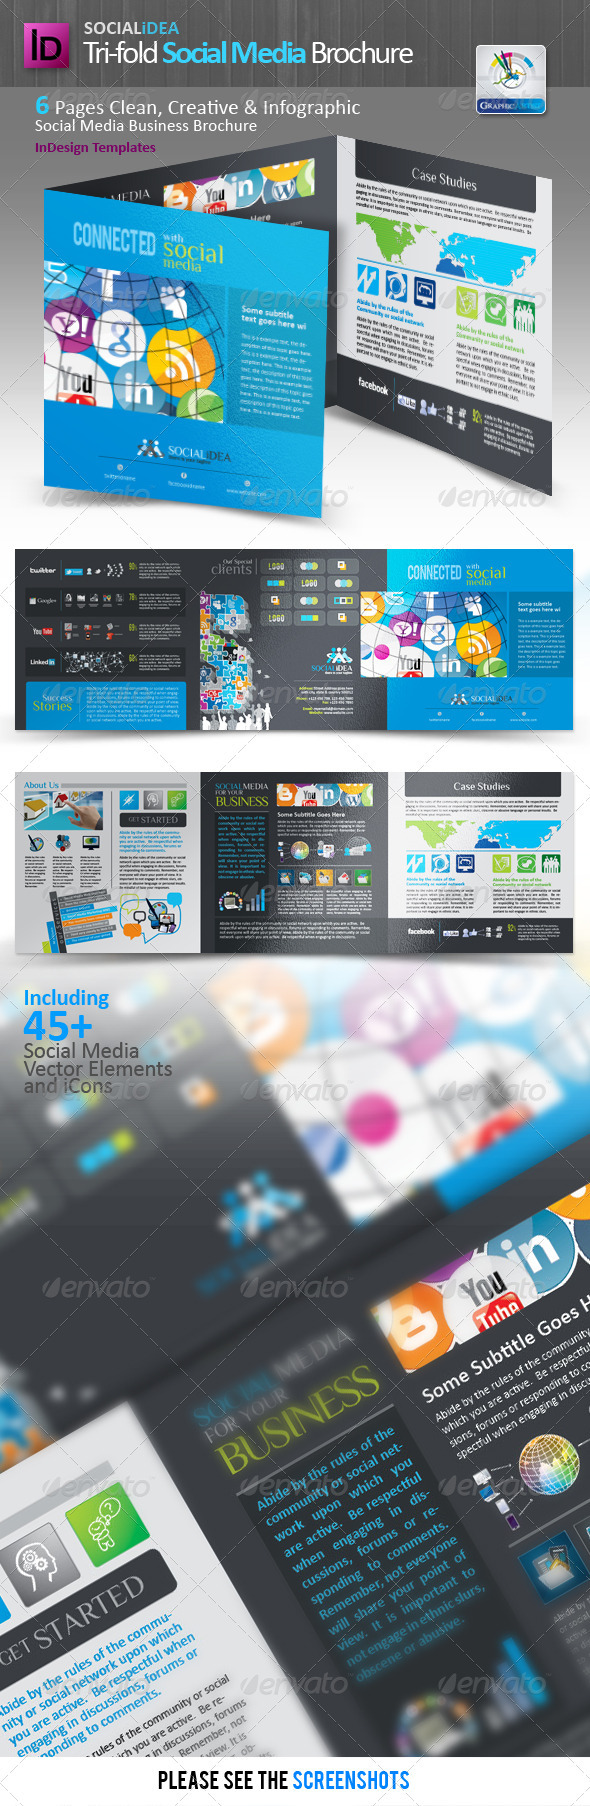 Socialidea Tri-fold Social Media Brochure - Corporate Brochures